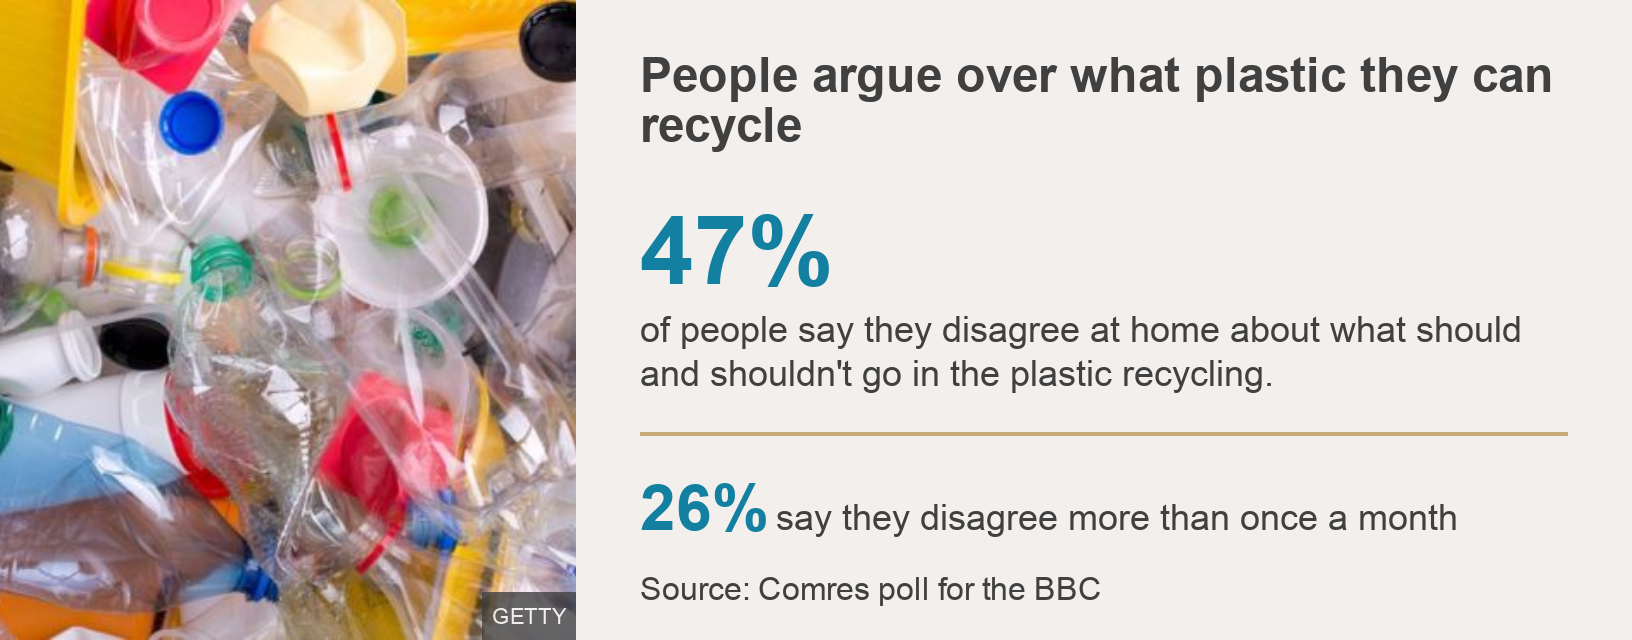 47% of people say they have had disagreements at home about what to put in the plastic recycling.